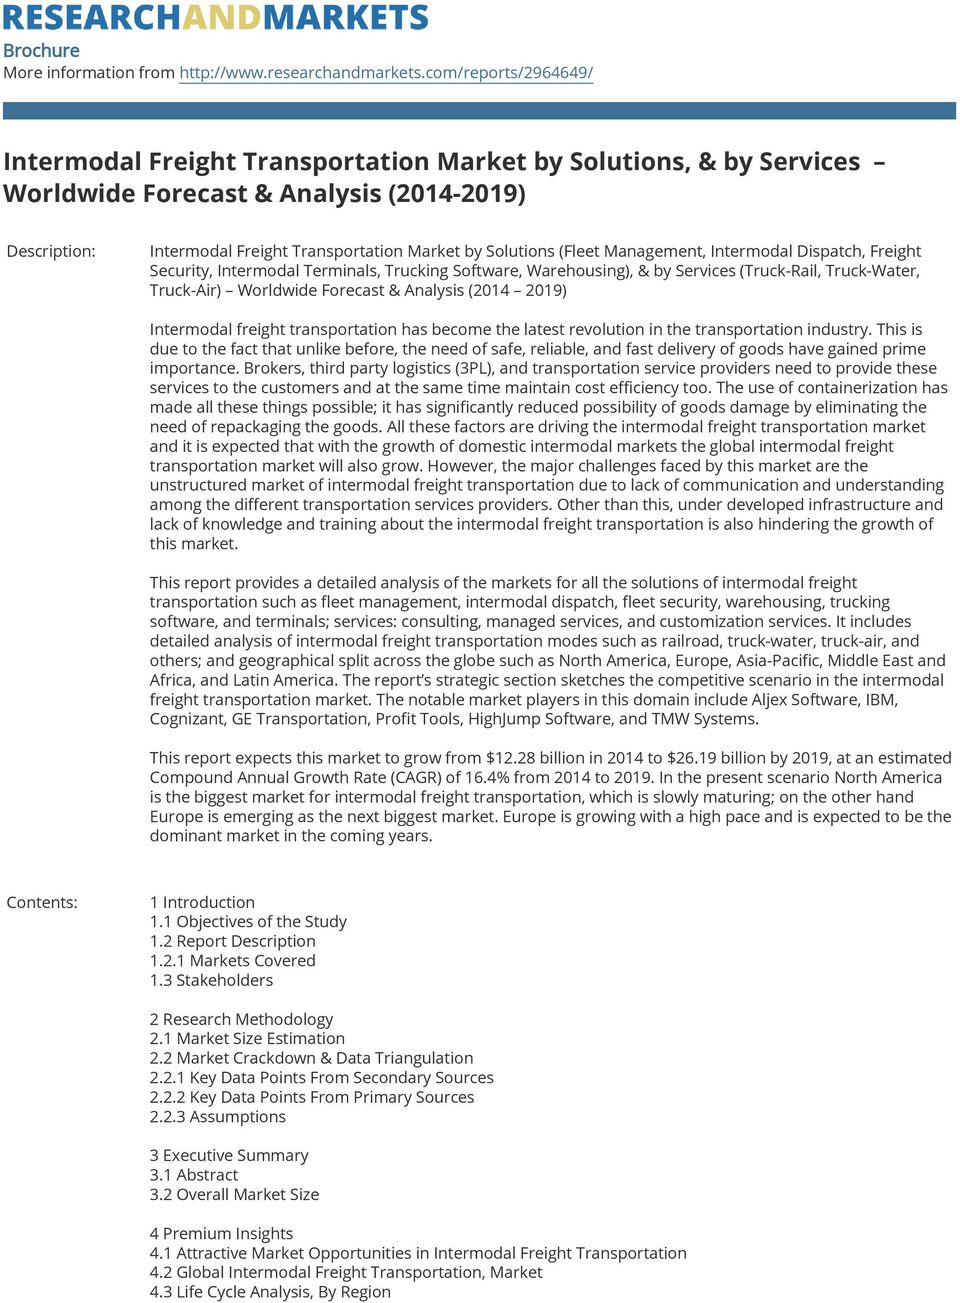 (Fleet Management, Intermodal Dispatch, Freight Security, Intermodal Terminals, Trucking Software, Warehousing), & by Services (Truck-Rail, Truck-Water, Truck-Air) Worldwide Forecast & Analysis (2014